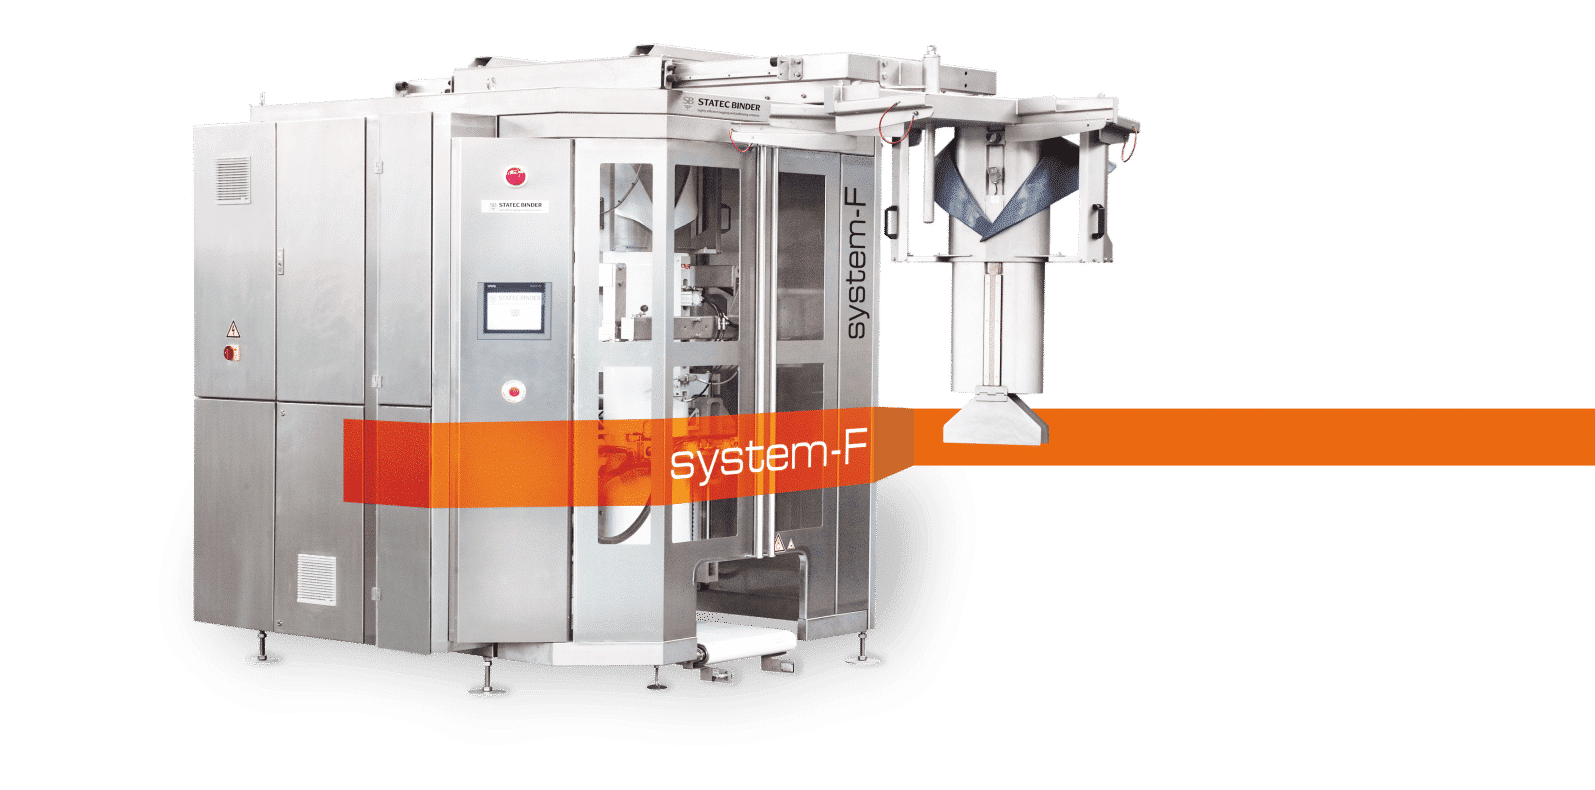 SYSTEM-F vertical FFS-bagging machine | STATEC BINDER